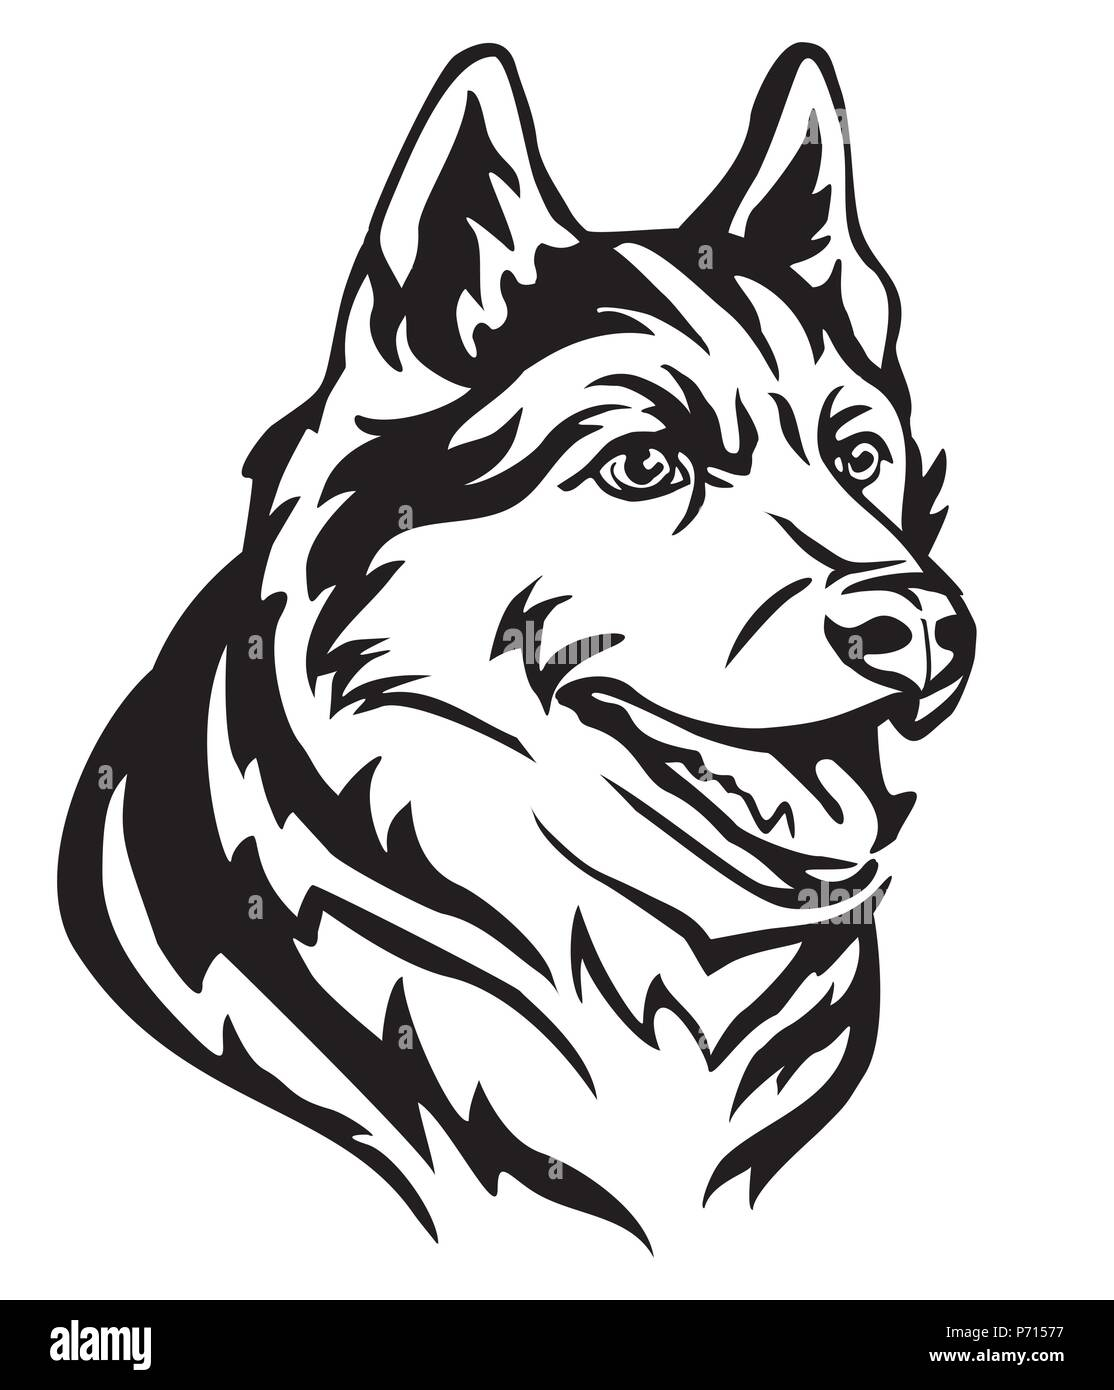 Decorative portrait in profile of Dog Siberian Husky, vector isolated illustration in black color on white background. Image for design and tattoo. - Stock Vector